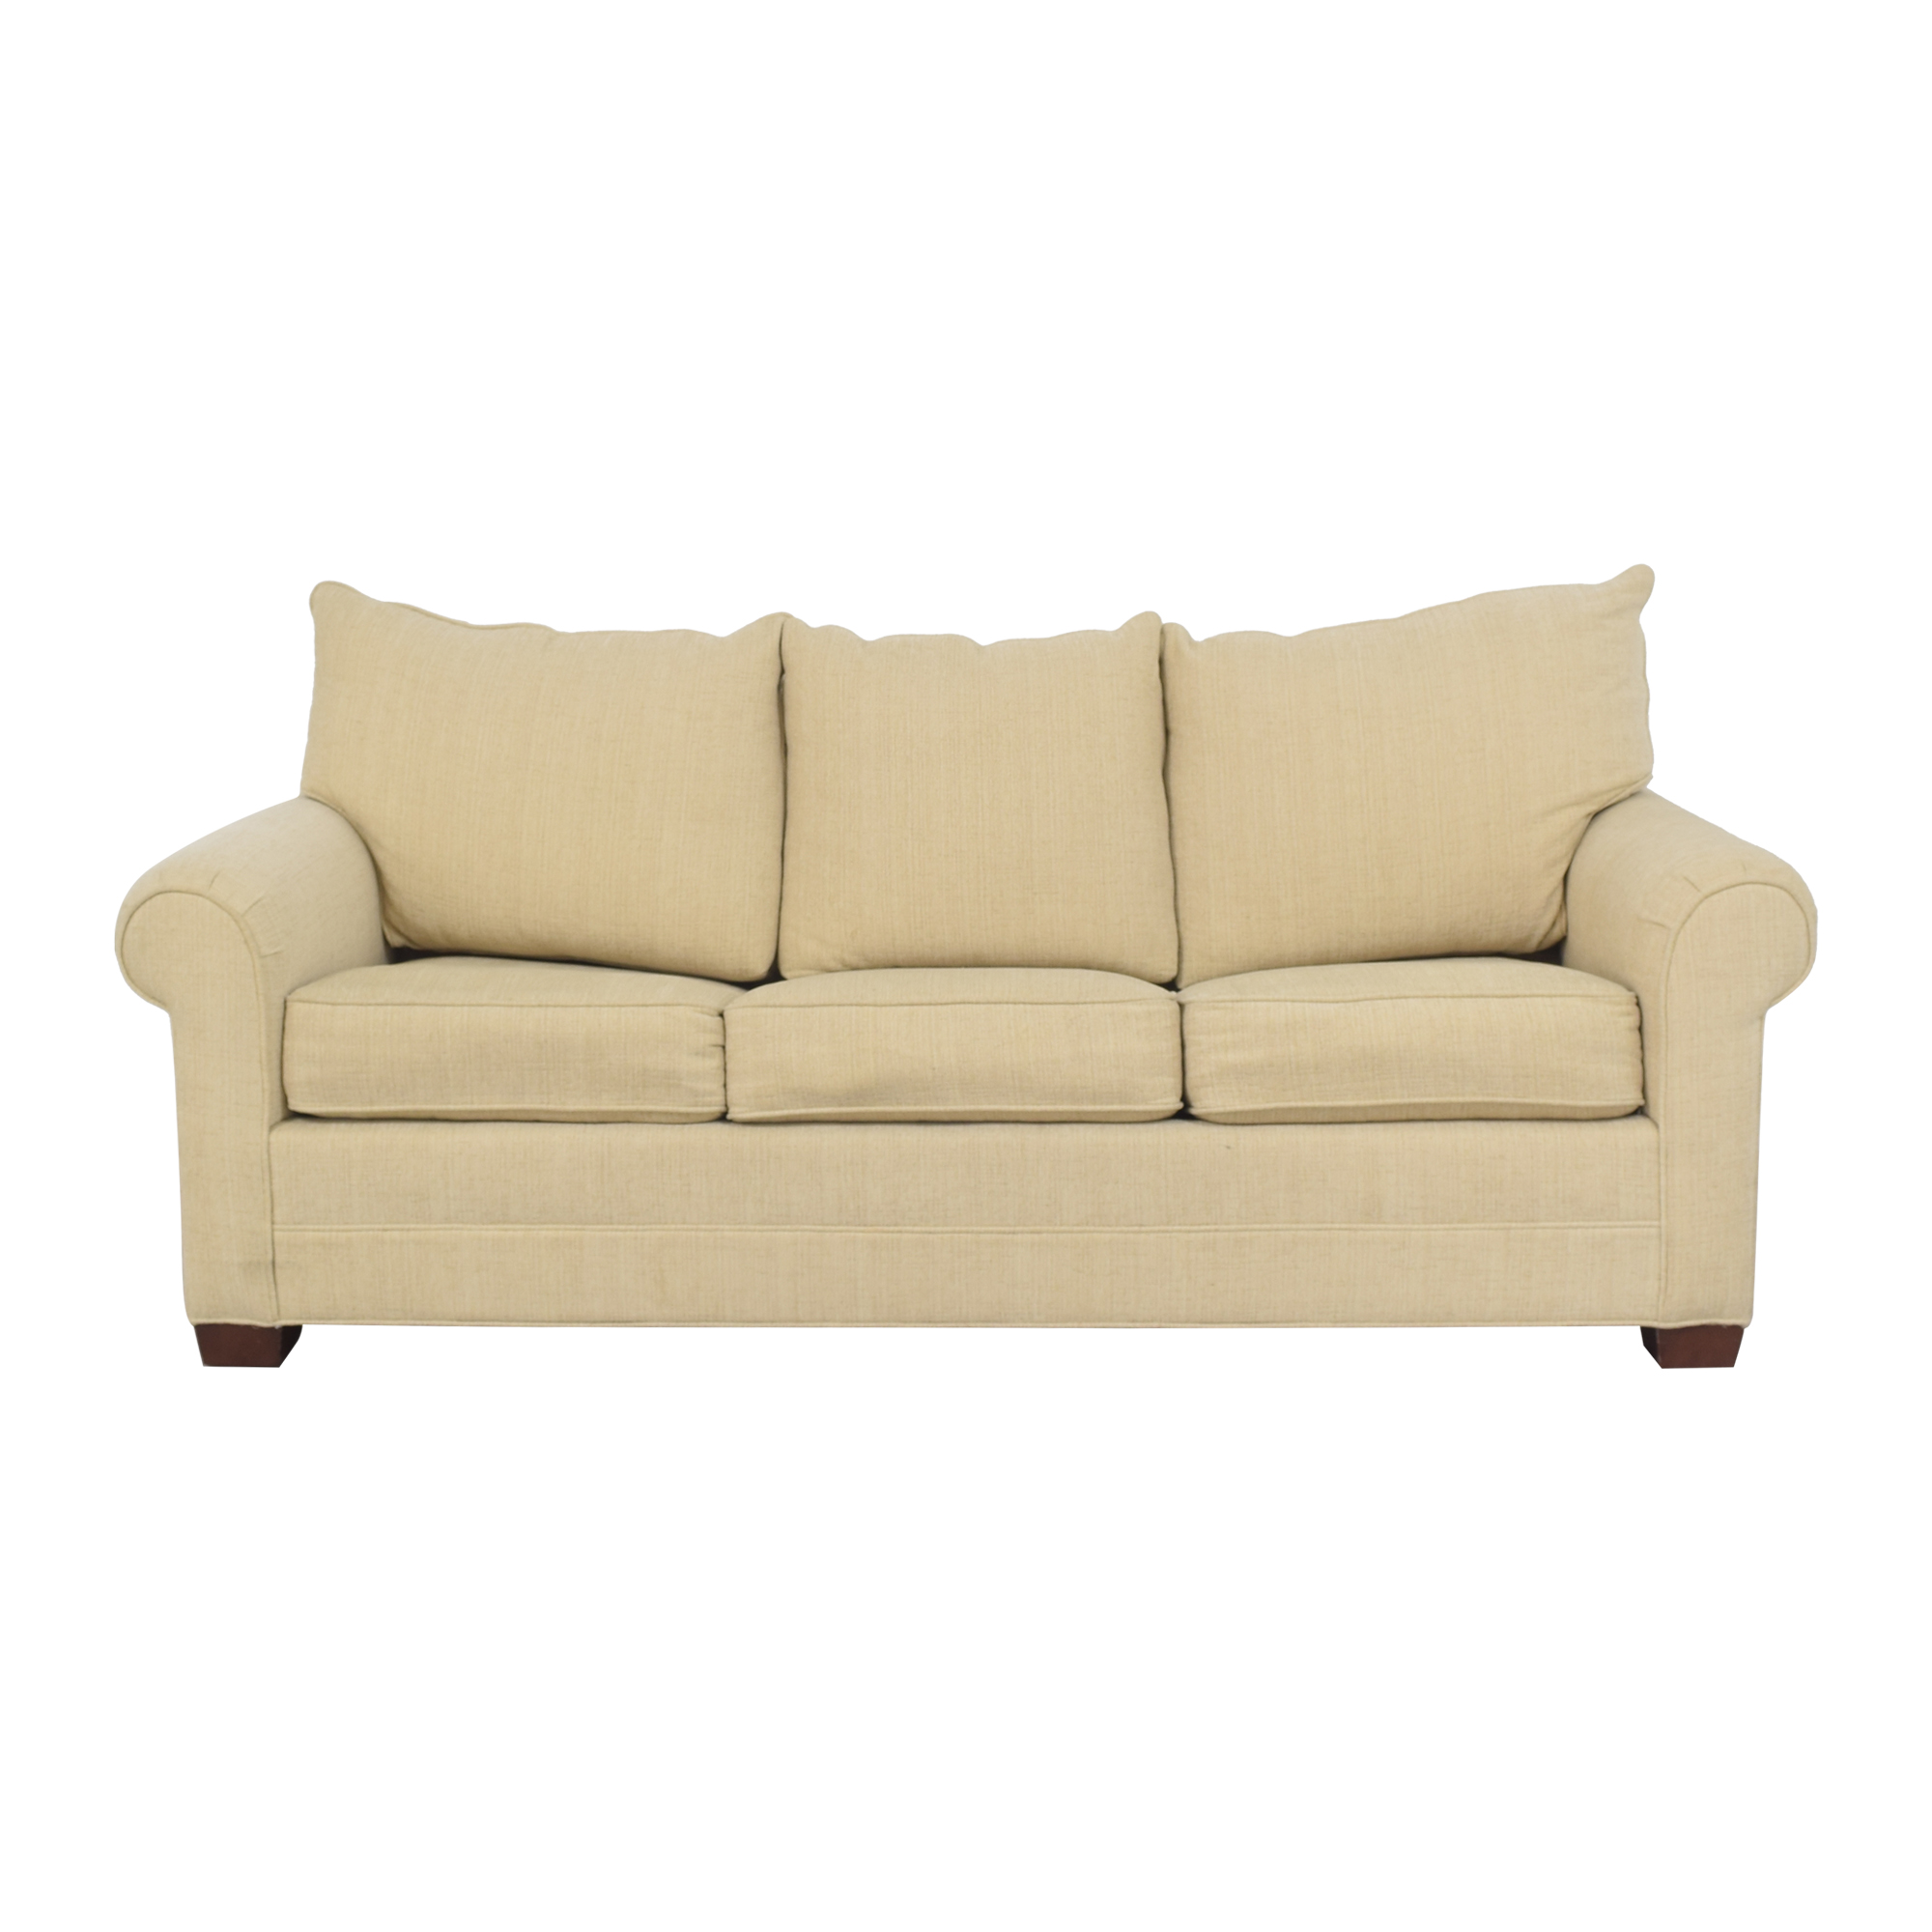 Huntington House Huntington House Roll Arm Sleeper Sofa nyc